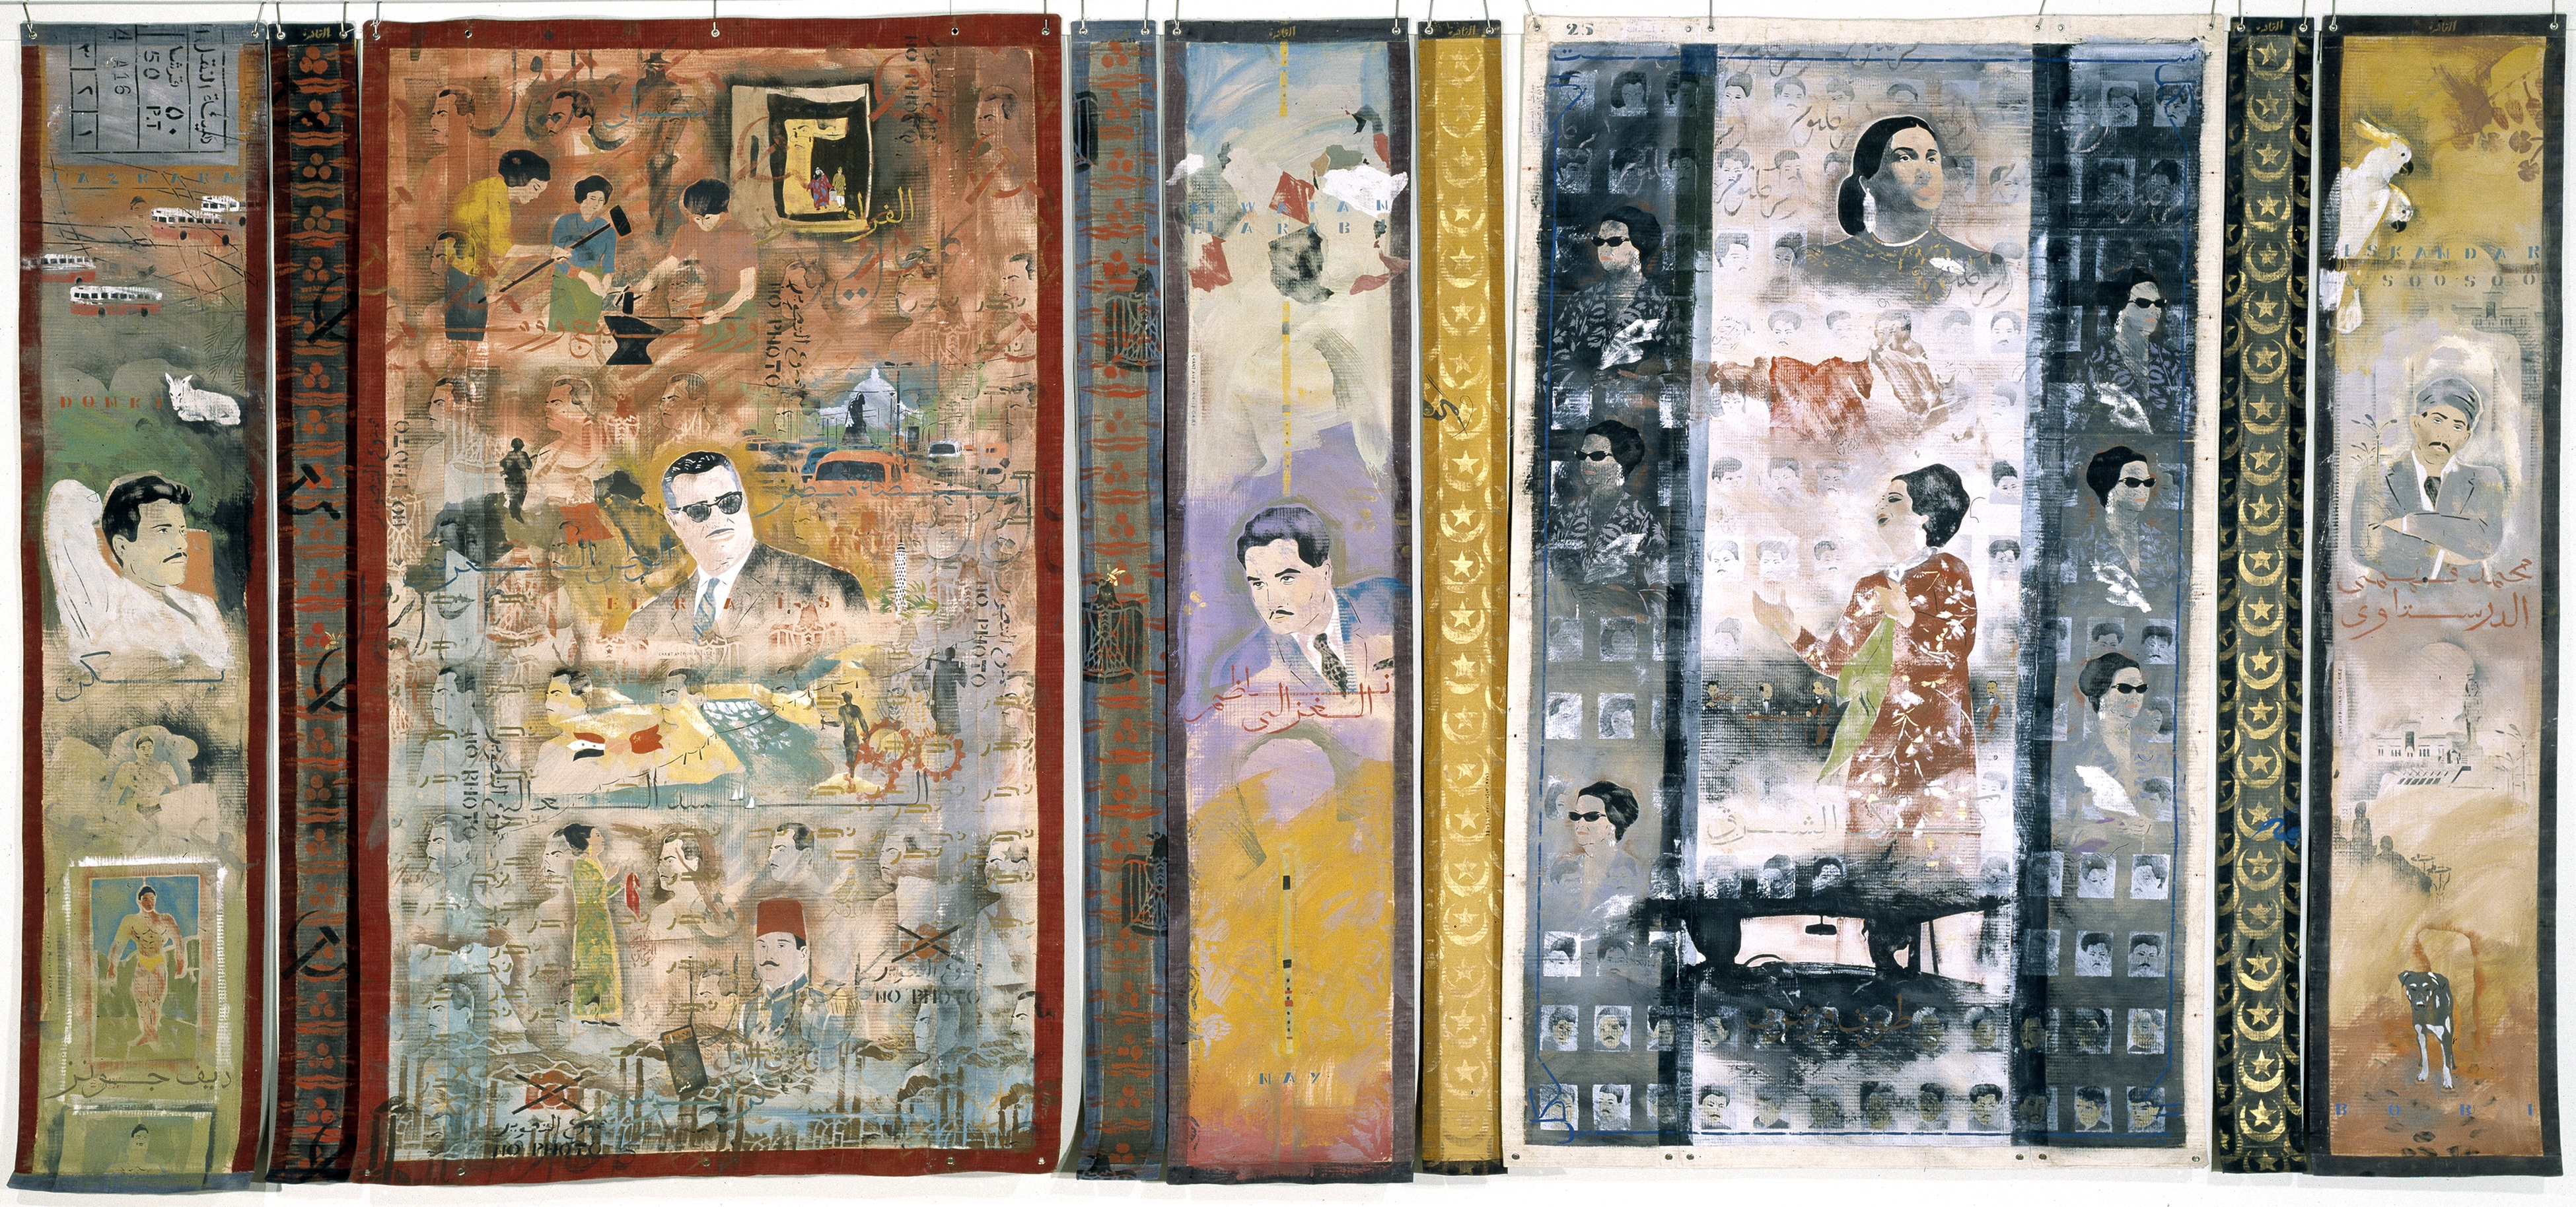 Colorful wall art with depictions of people and urban scenes.